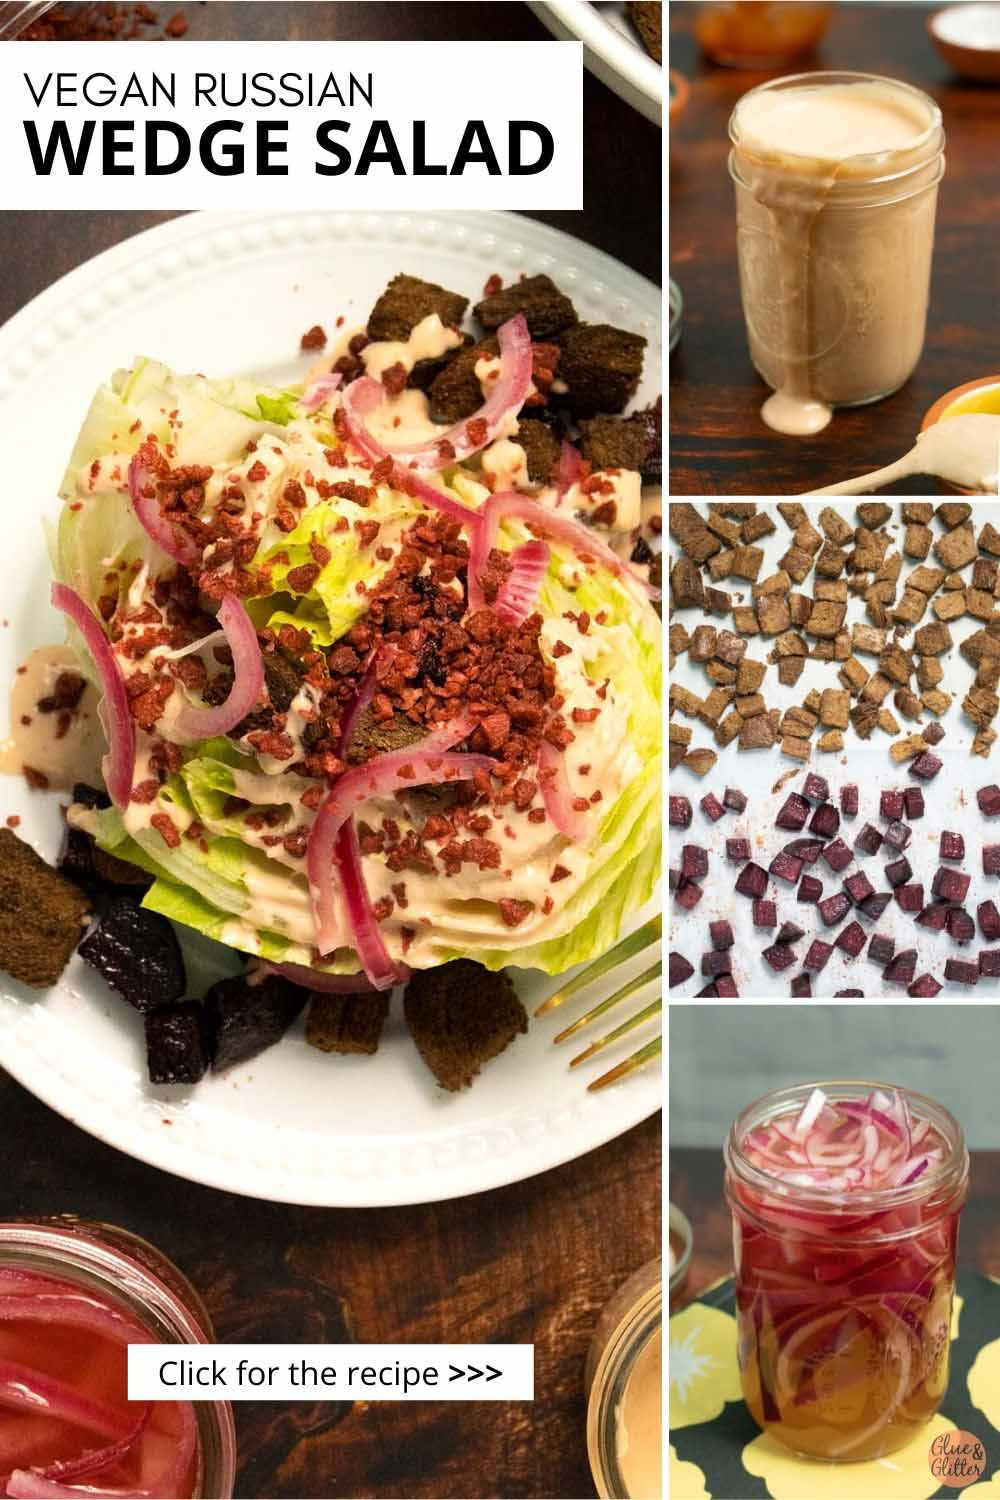 image collage showing wedge salad ingredients next to the finished salad